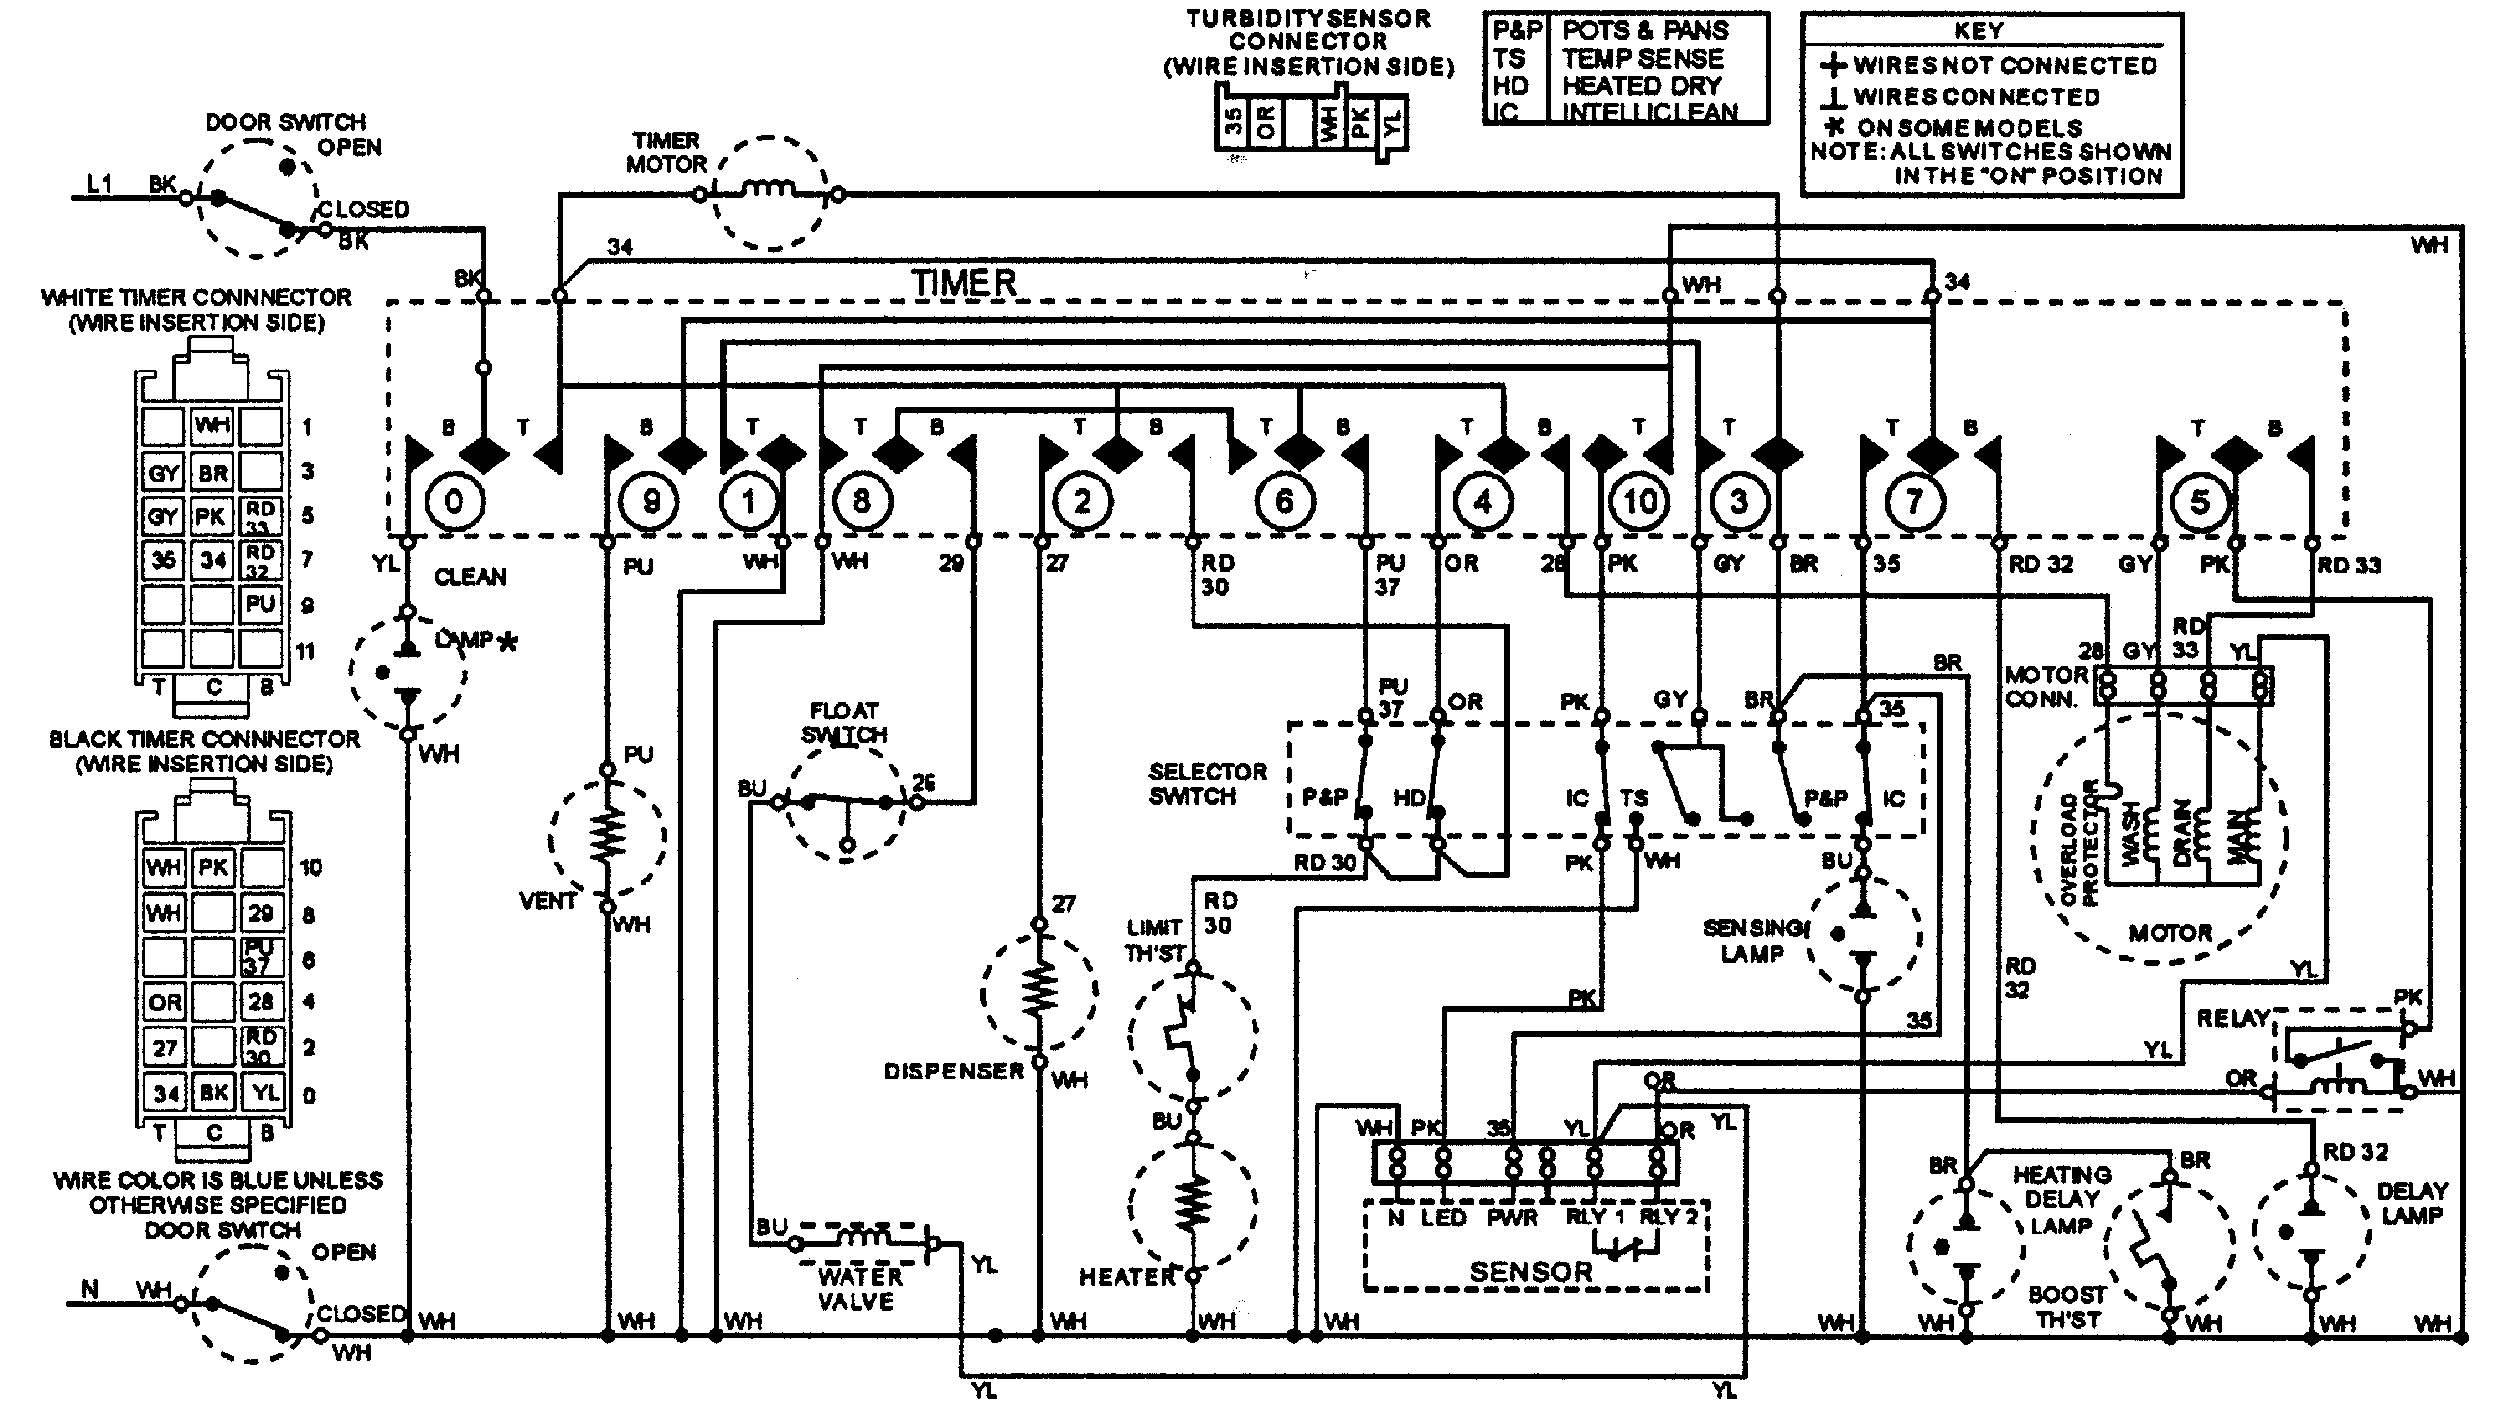 [DVZP_7254]   DIAGRAM] Hotpoint Dishwasher Wiring Diagram FULL Version HD Quality Wiring  Diagram - DDWIRING.LES-CAFES-DERIC-ORLEANS.FR | Hotpoint Dishwasher Wiring Diagram |  | Best Diagram Database